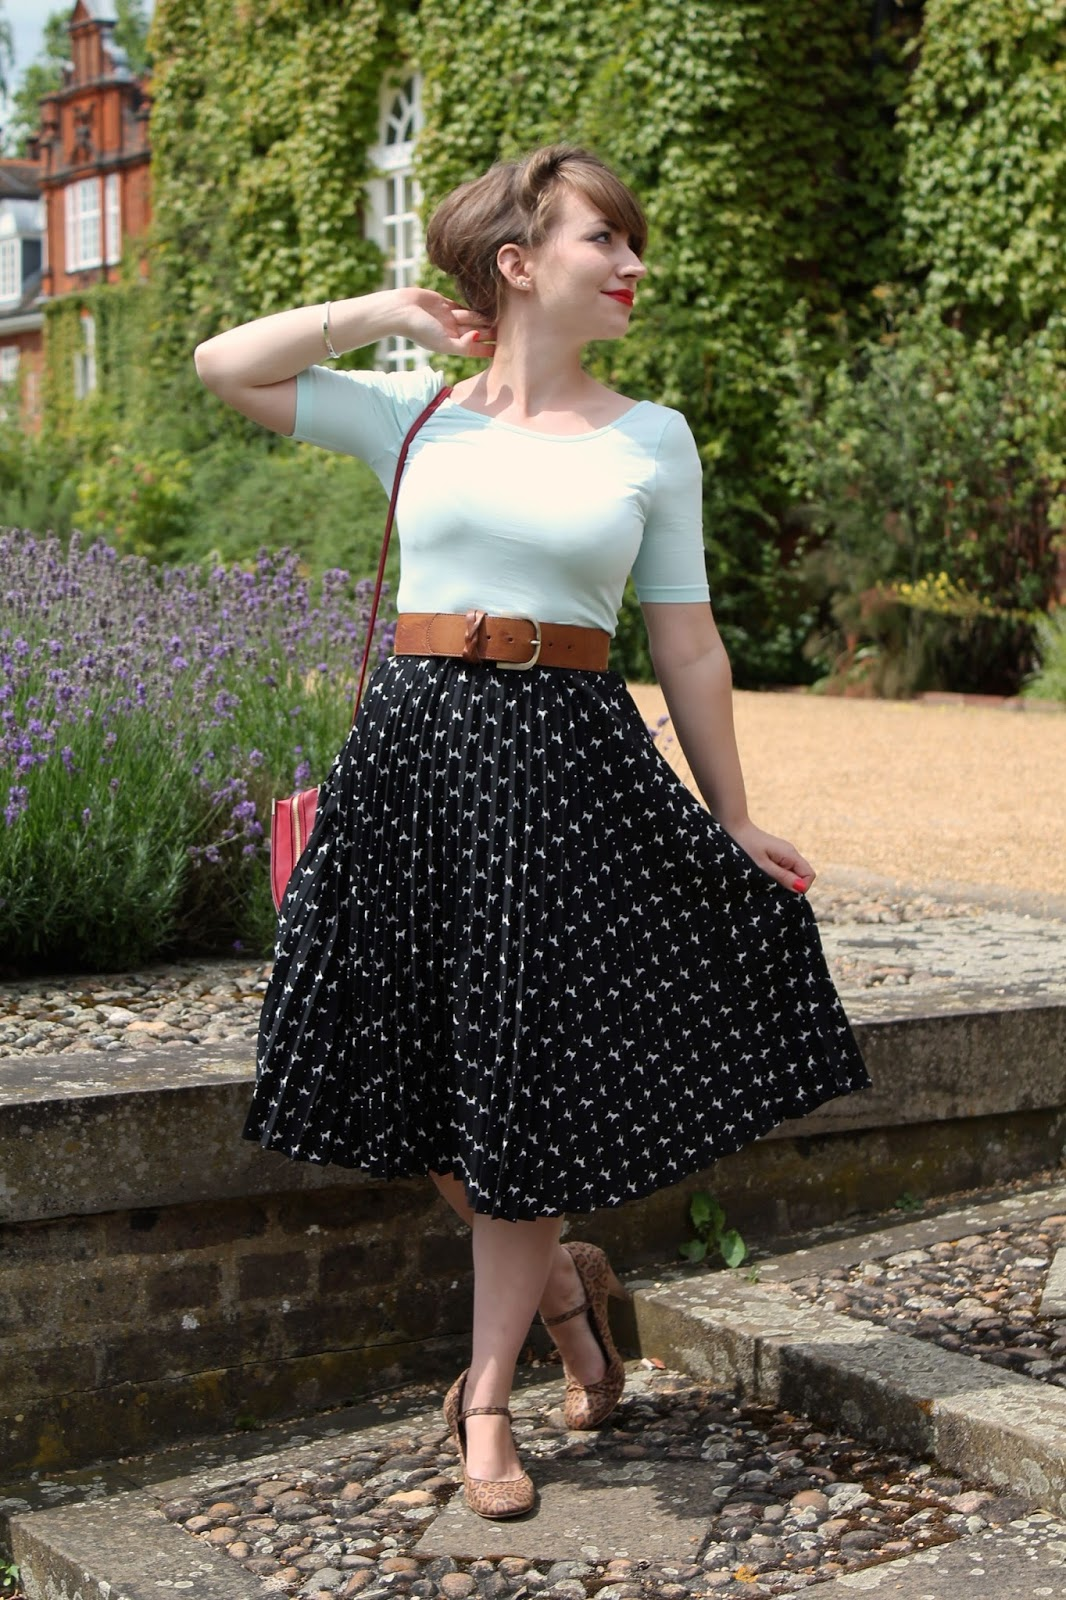 Using the modern crop top in vintage style